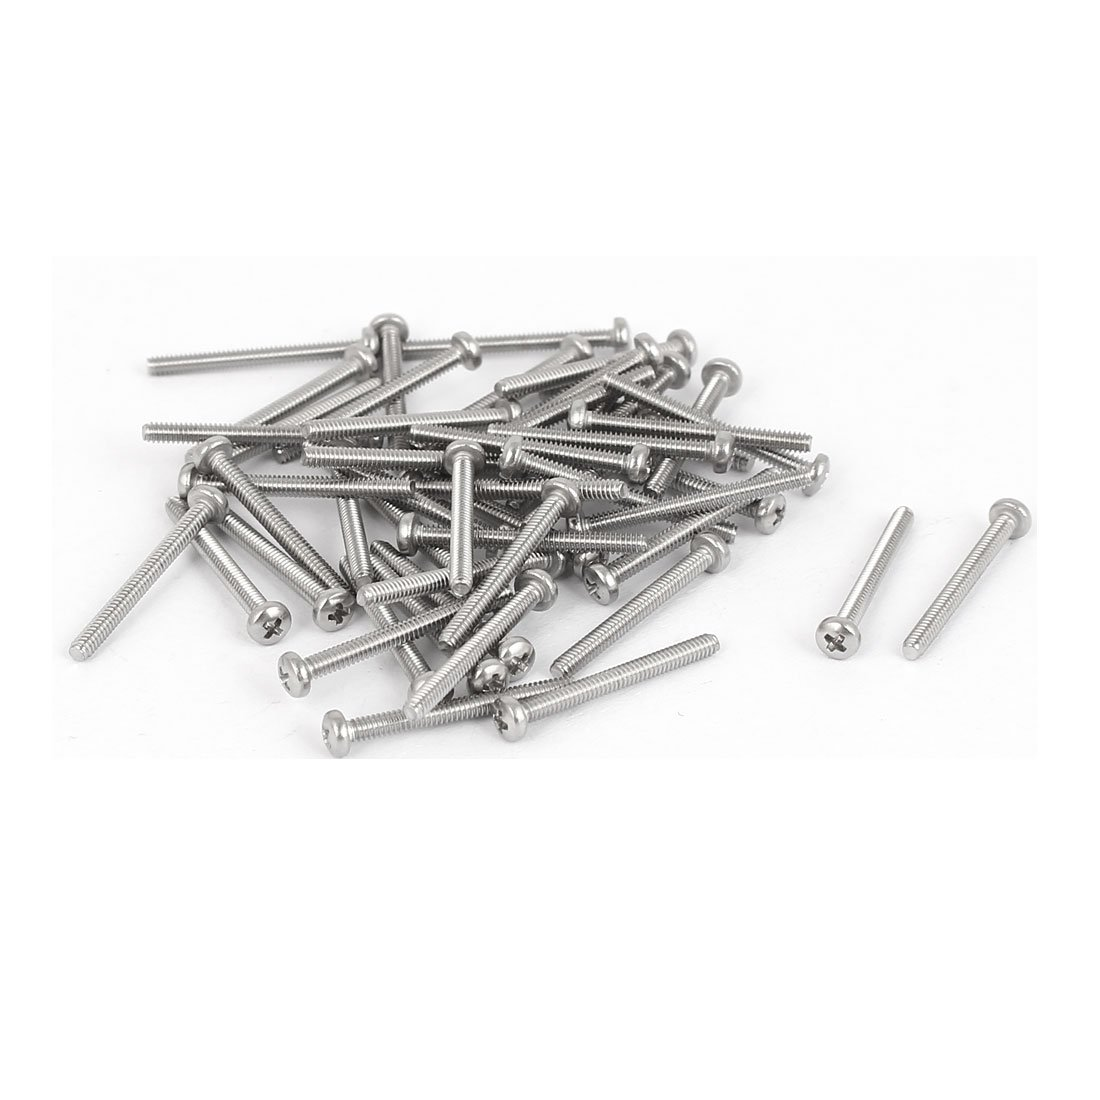 uxcell M1.6x16mm 316 Stainless Steel Phillips Pan Head Machine Screws Bolts 50 Pcs SYNCTEA042048